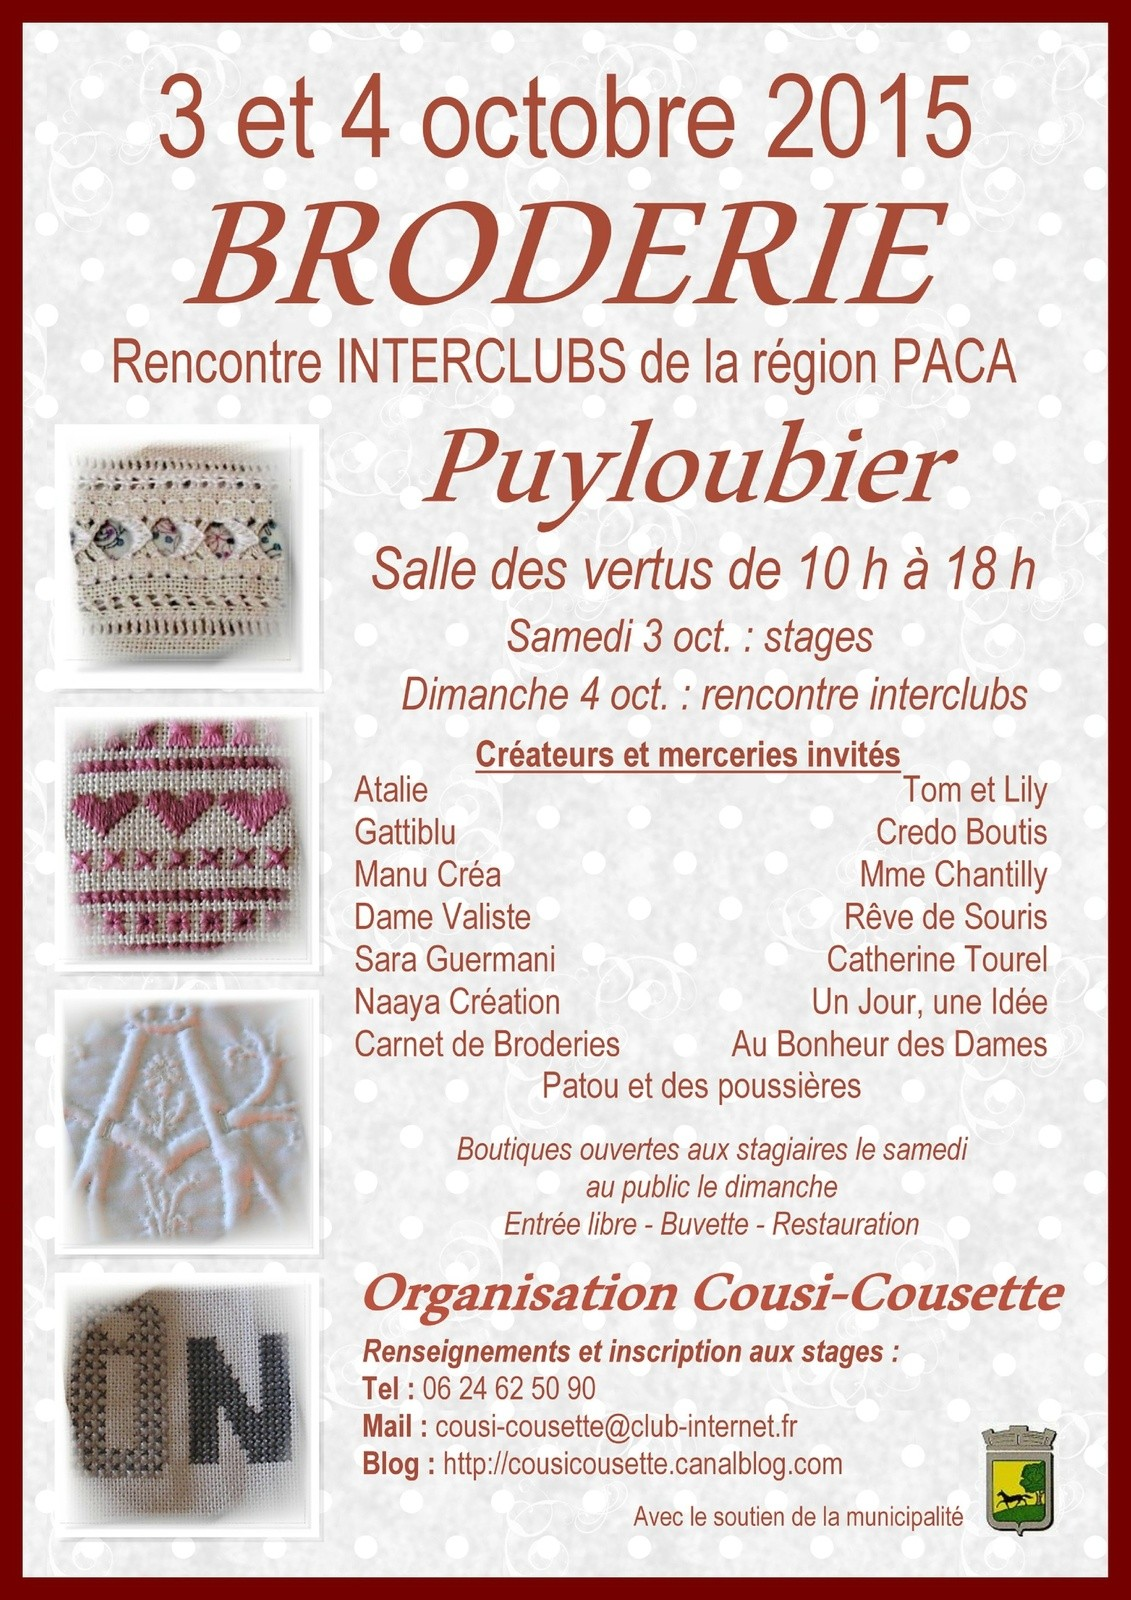 Rencontre interclubs de puyloubier